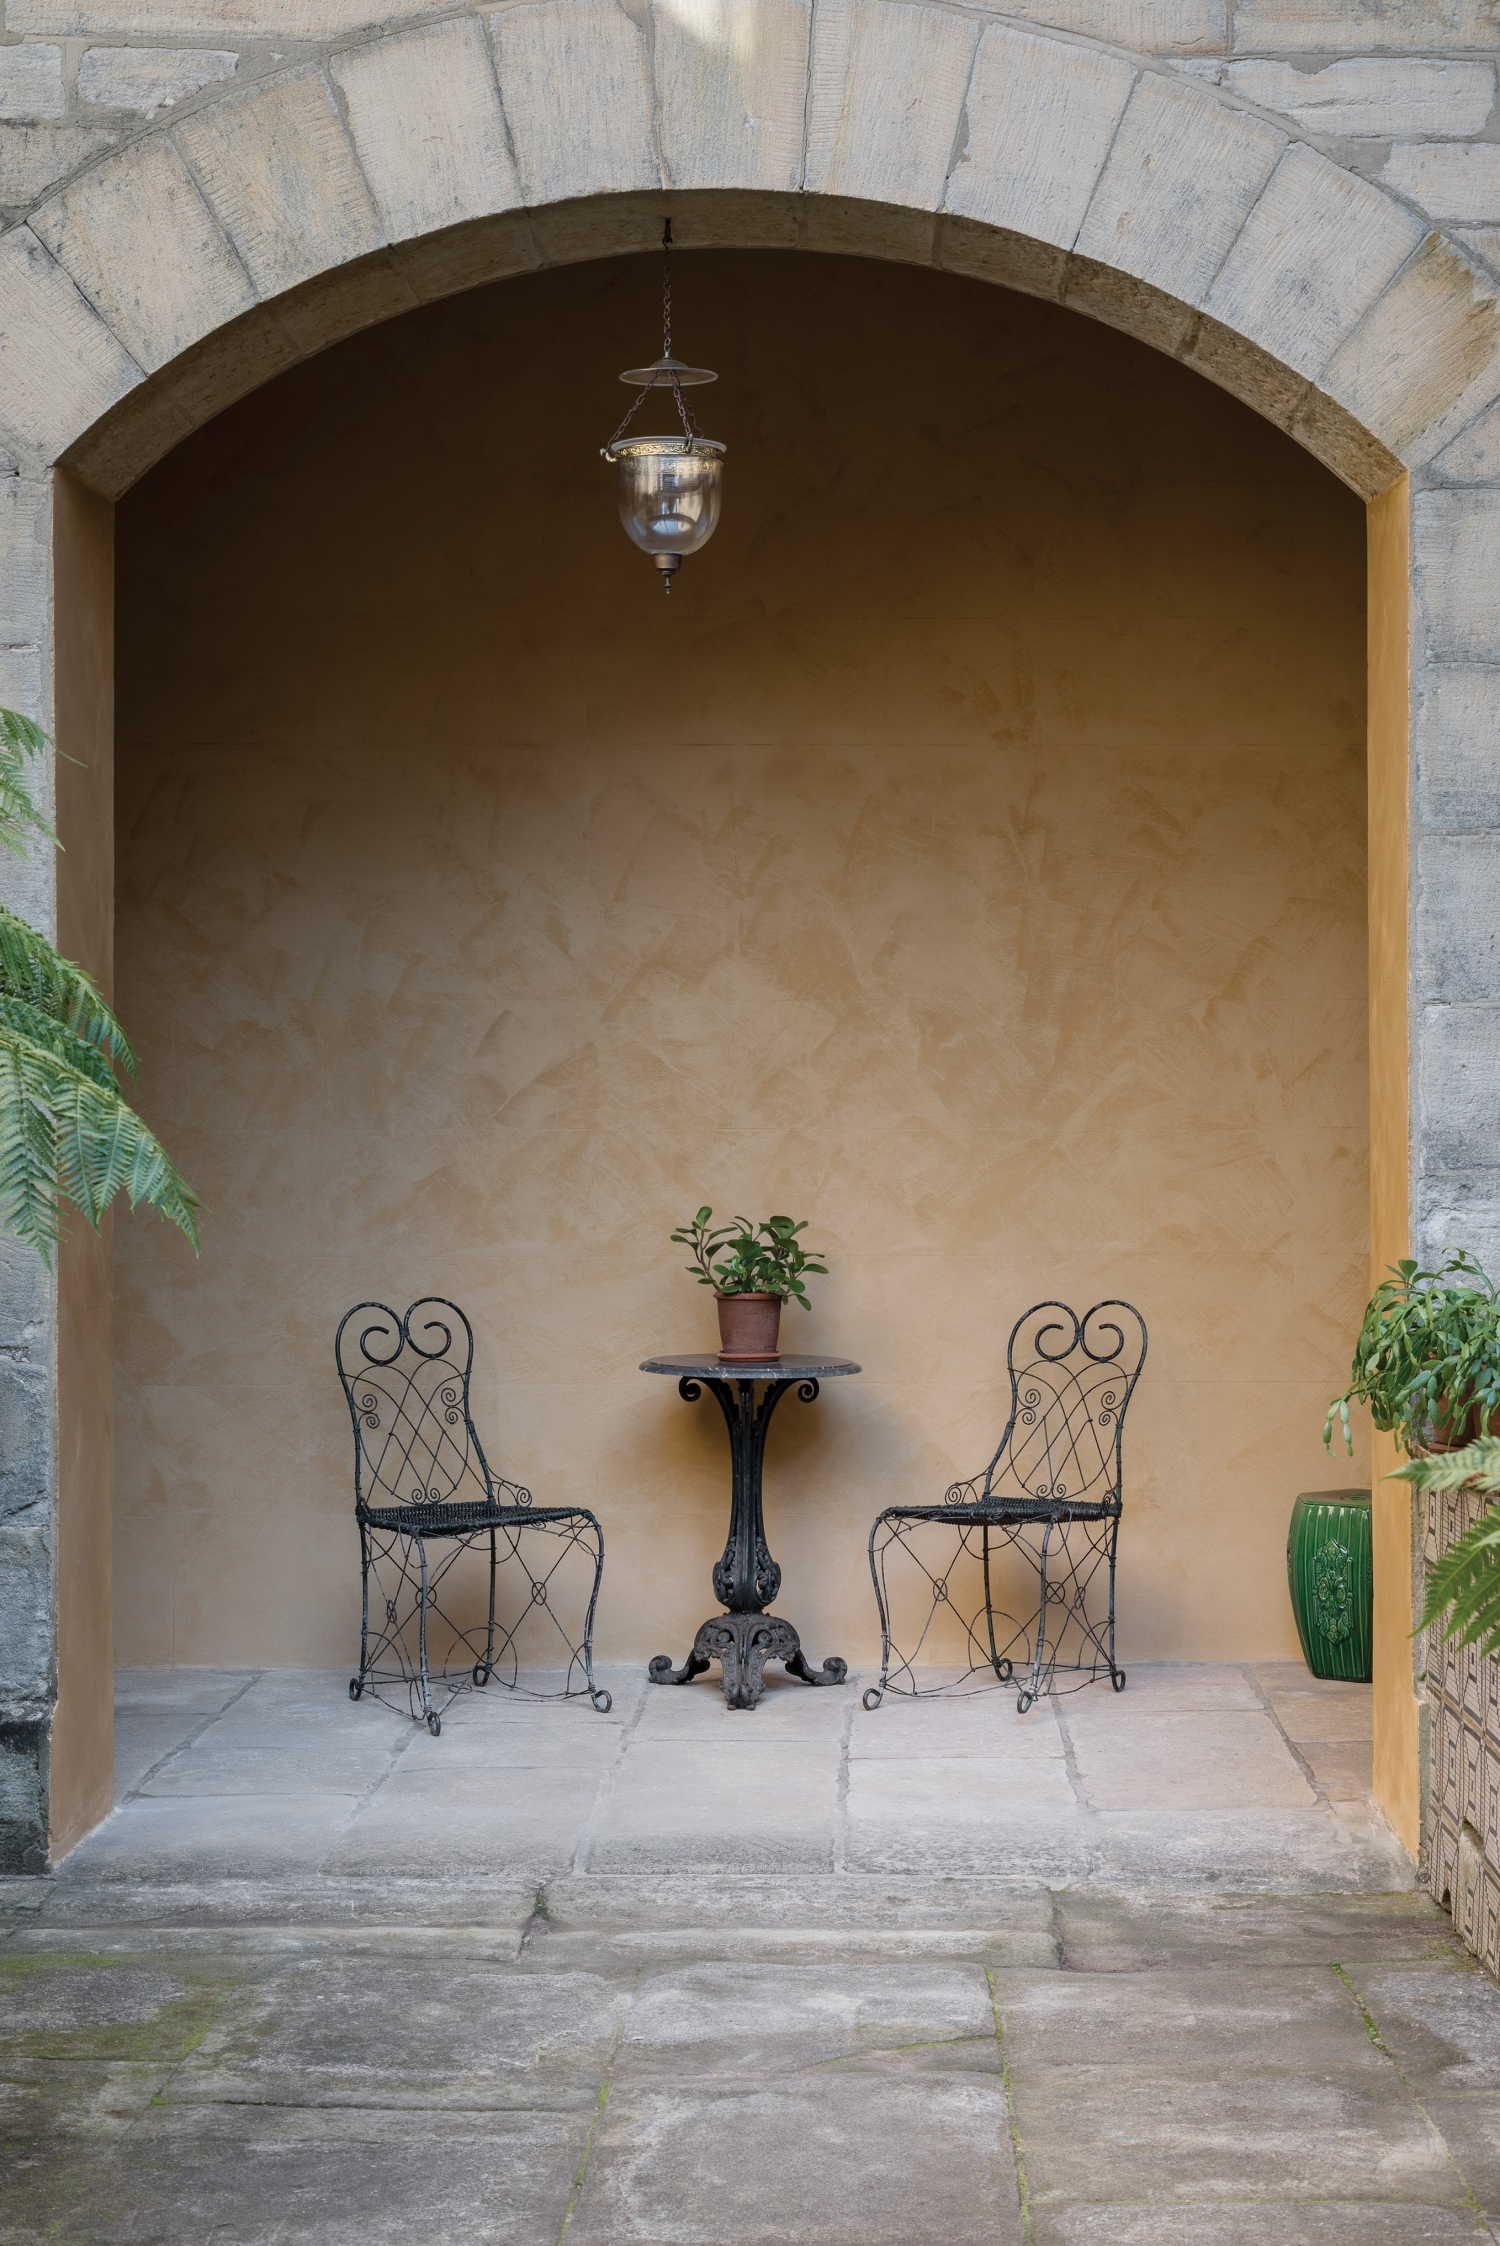 Two wrought iron chairs and plant holder in archway of colonnade.